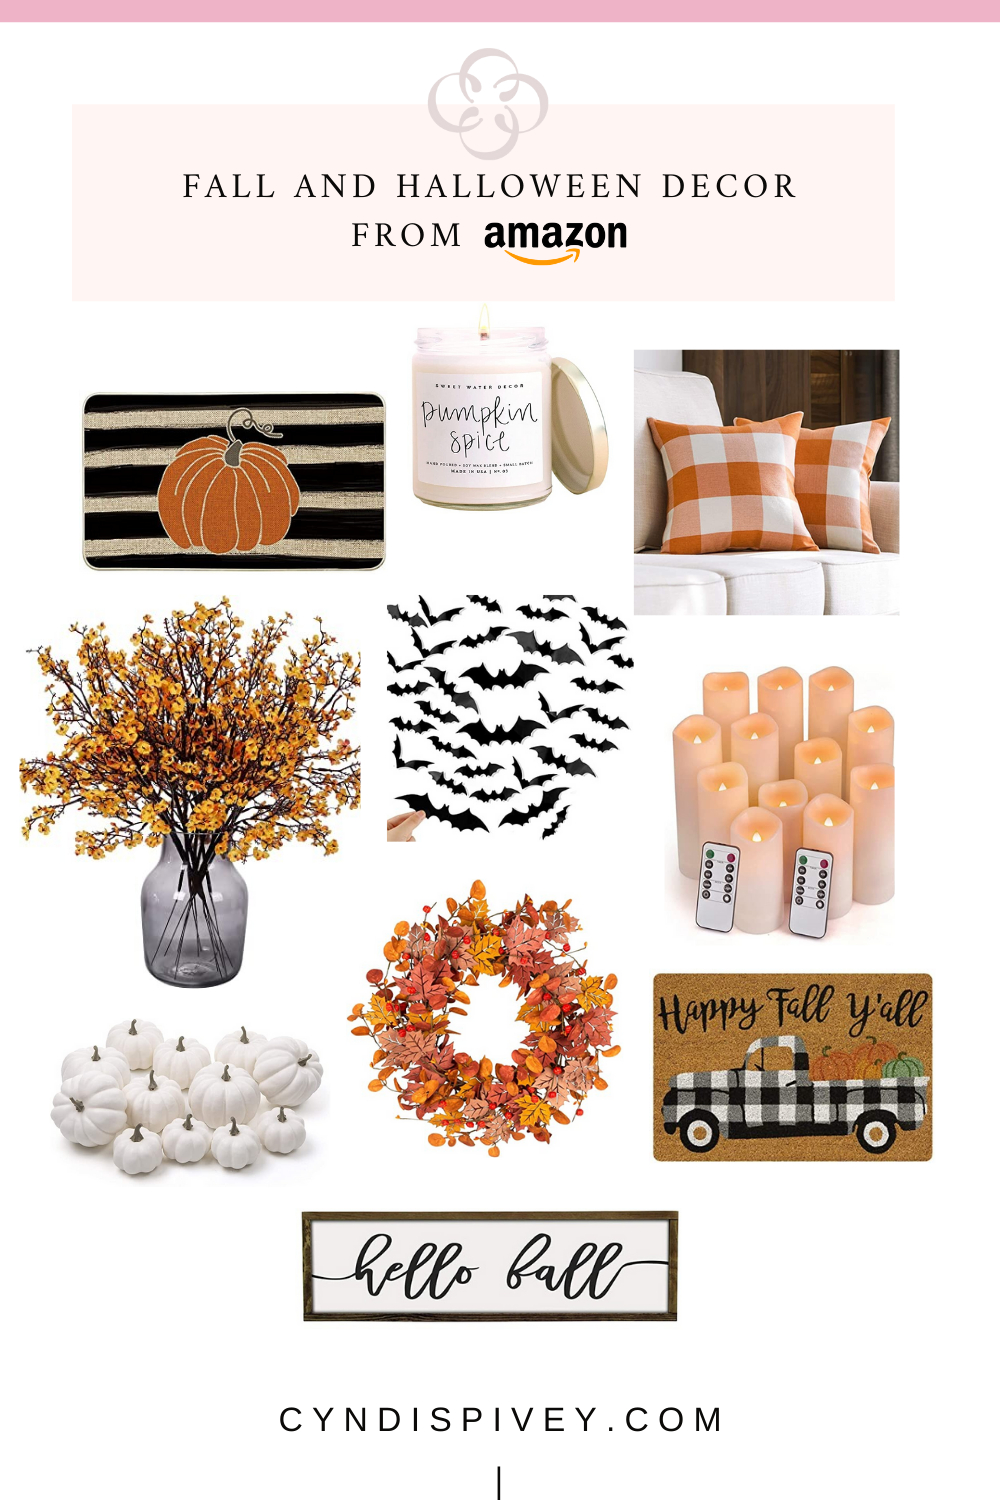 Fall and Halloween Decor from Amazon